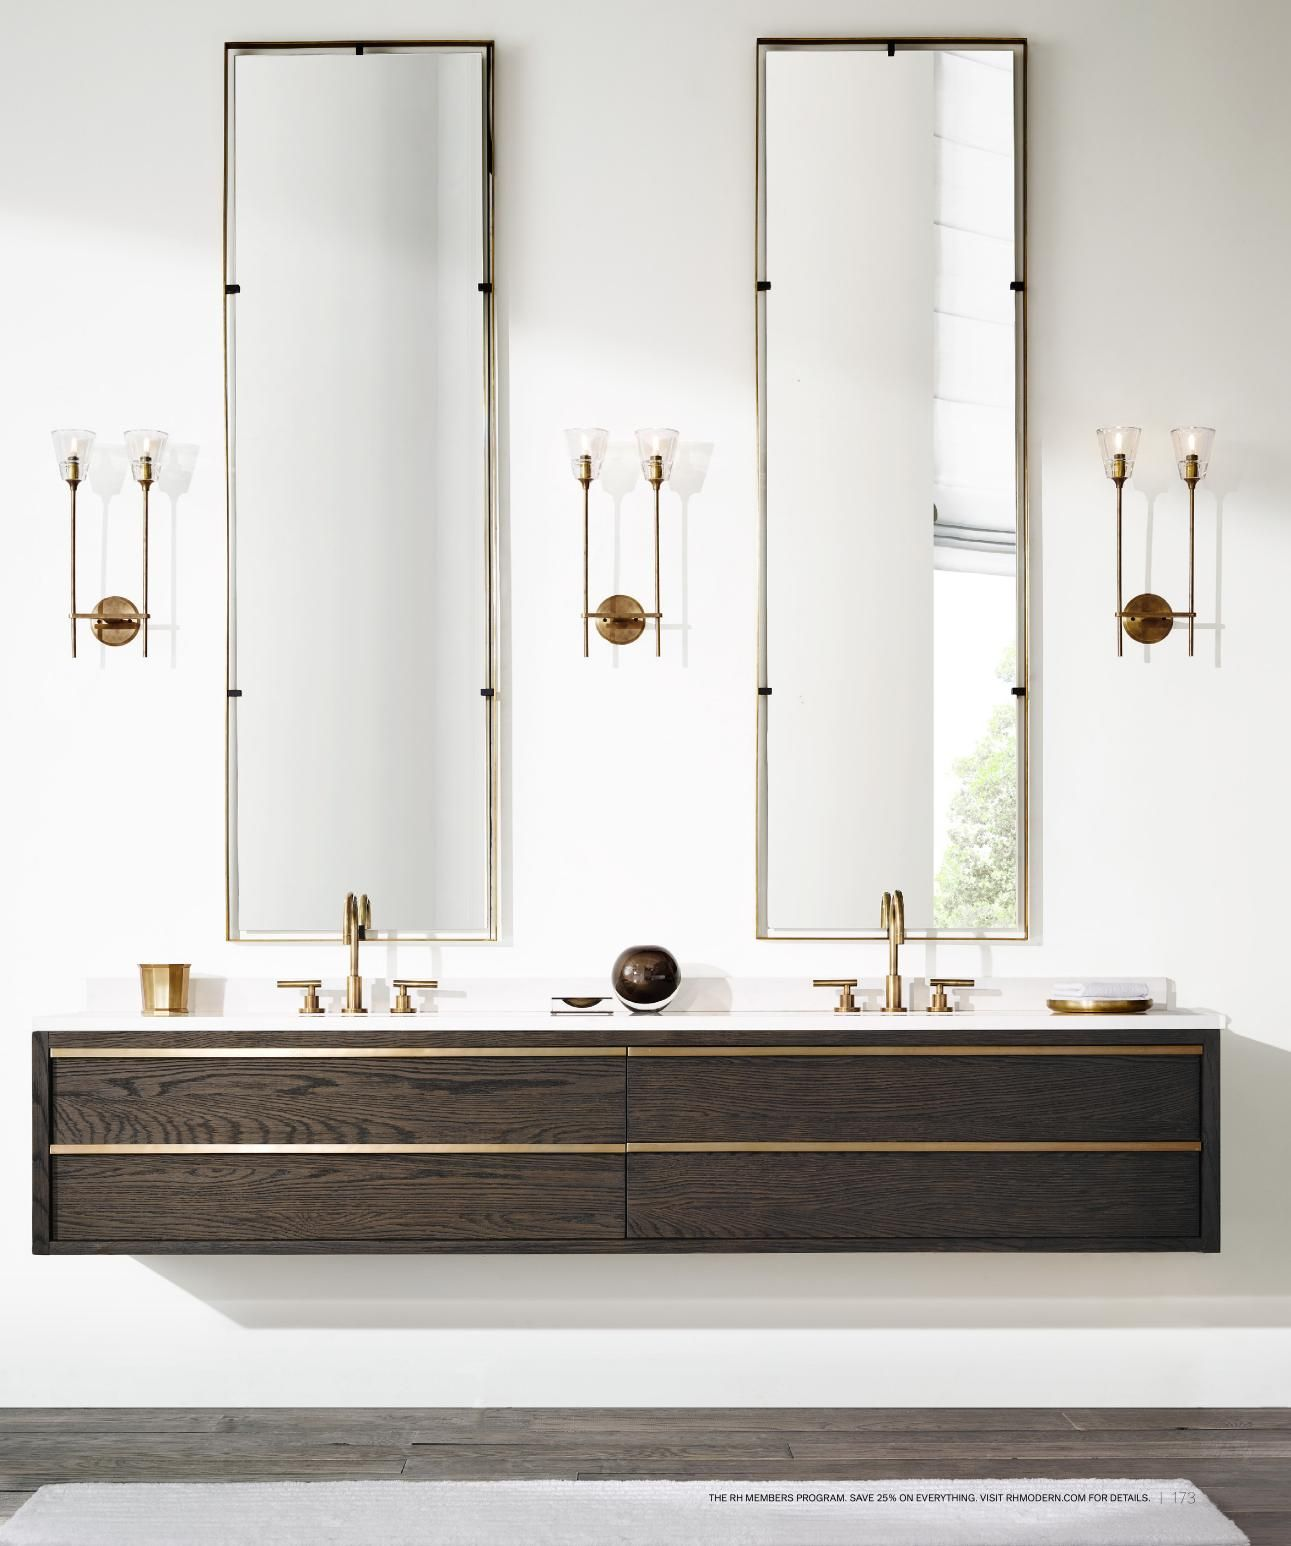 Restoration Hardware: what your bathroom can look like with plain ...